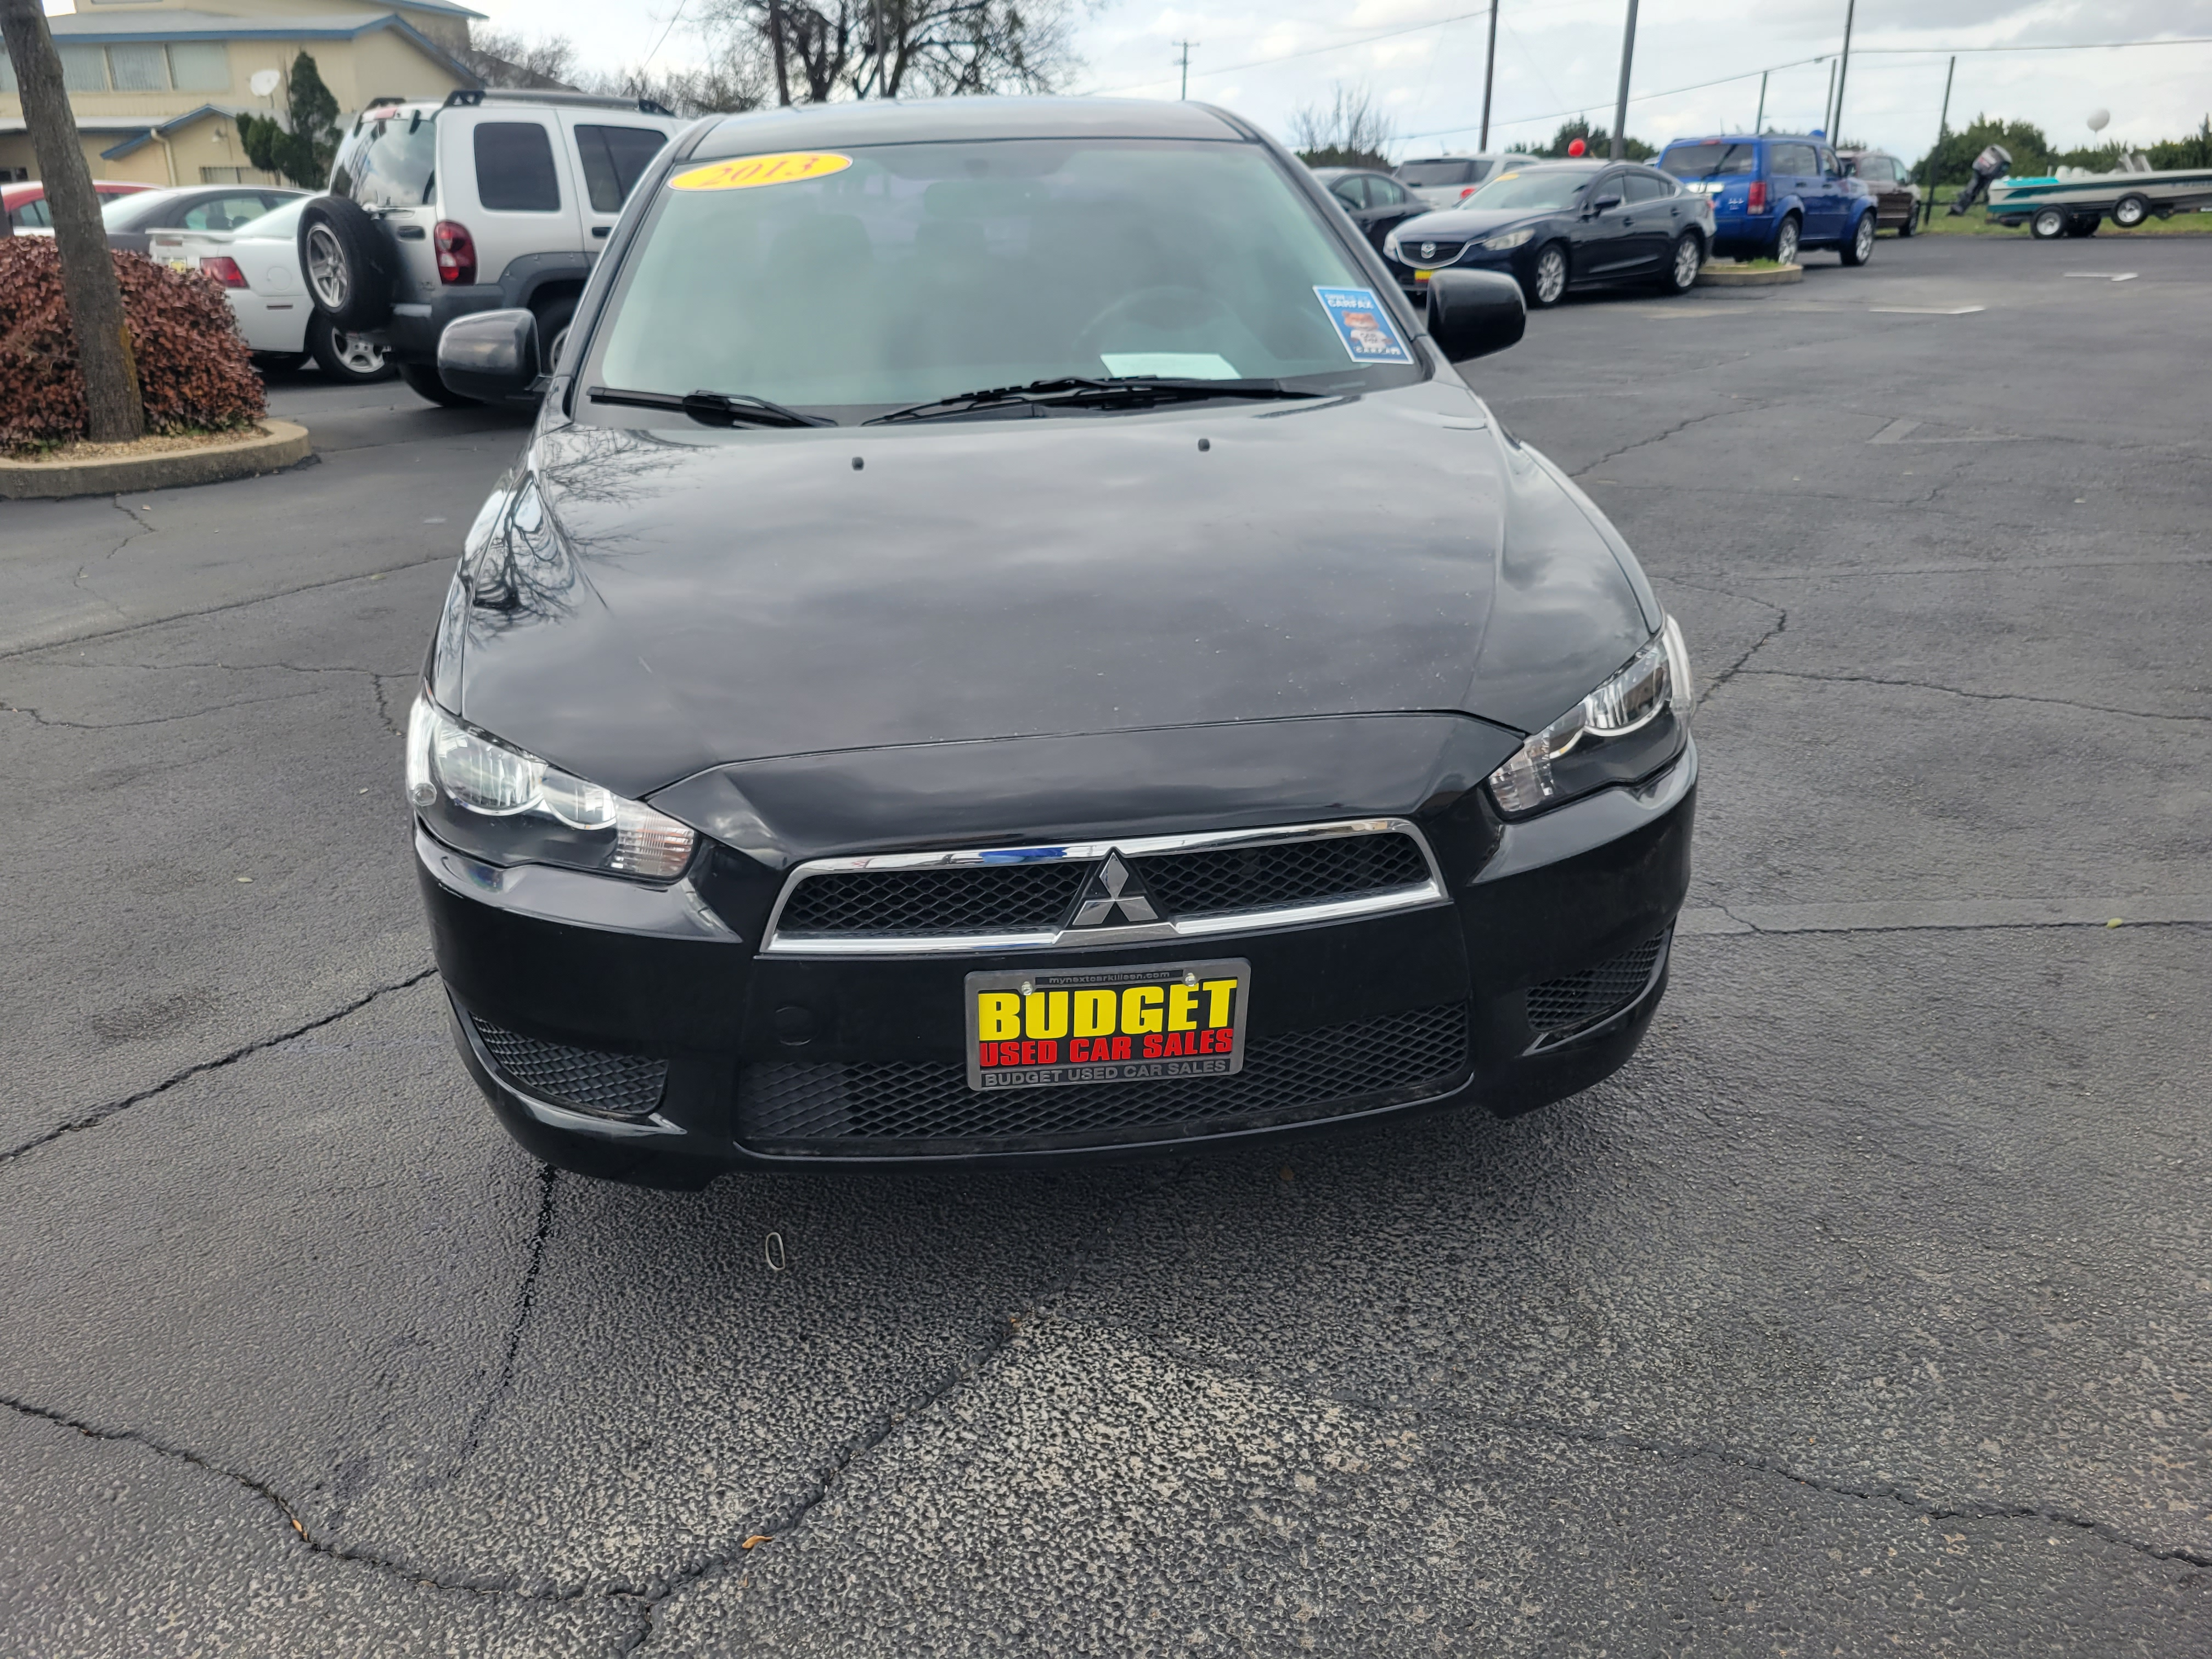 used vehicle - Sedan Mitsubishi Lancer 2013